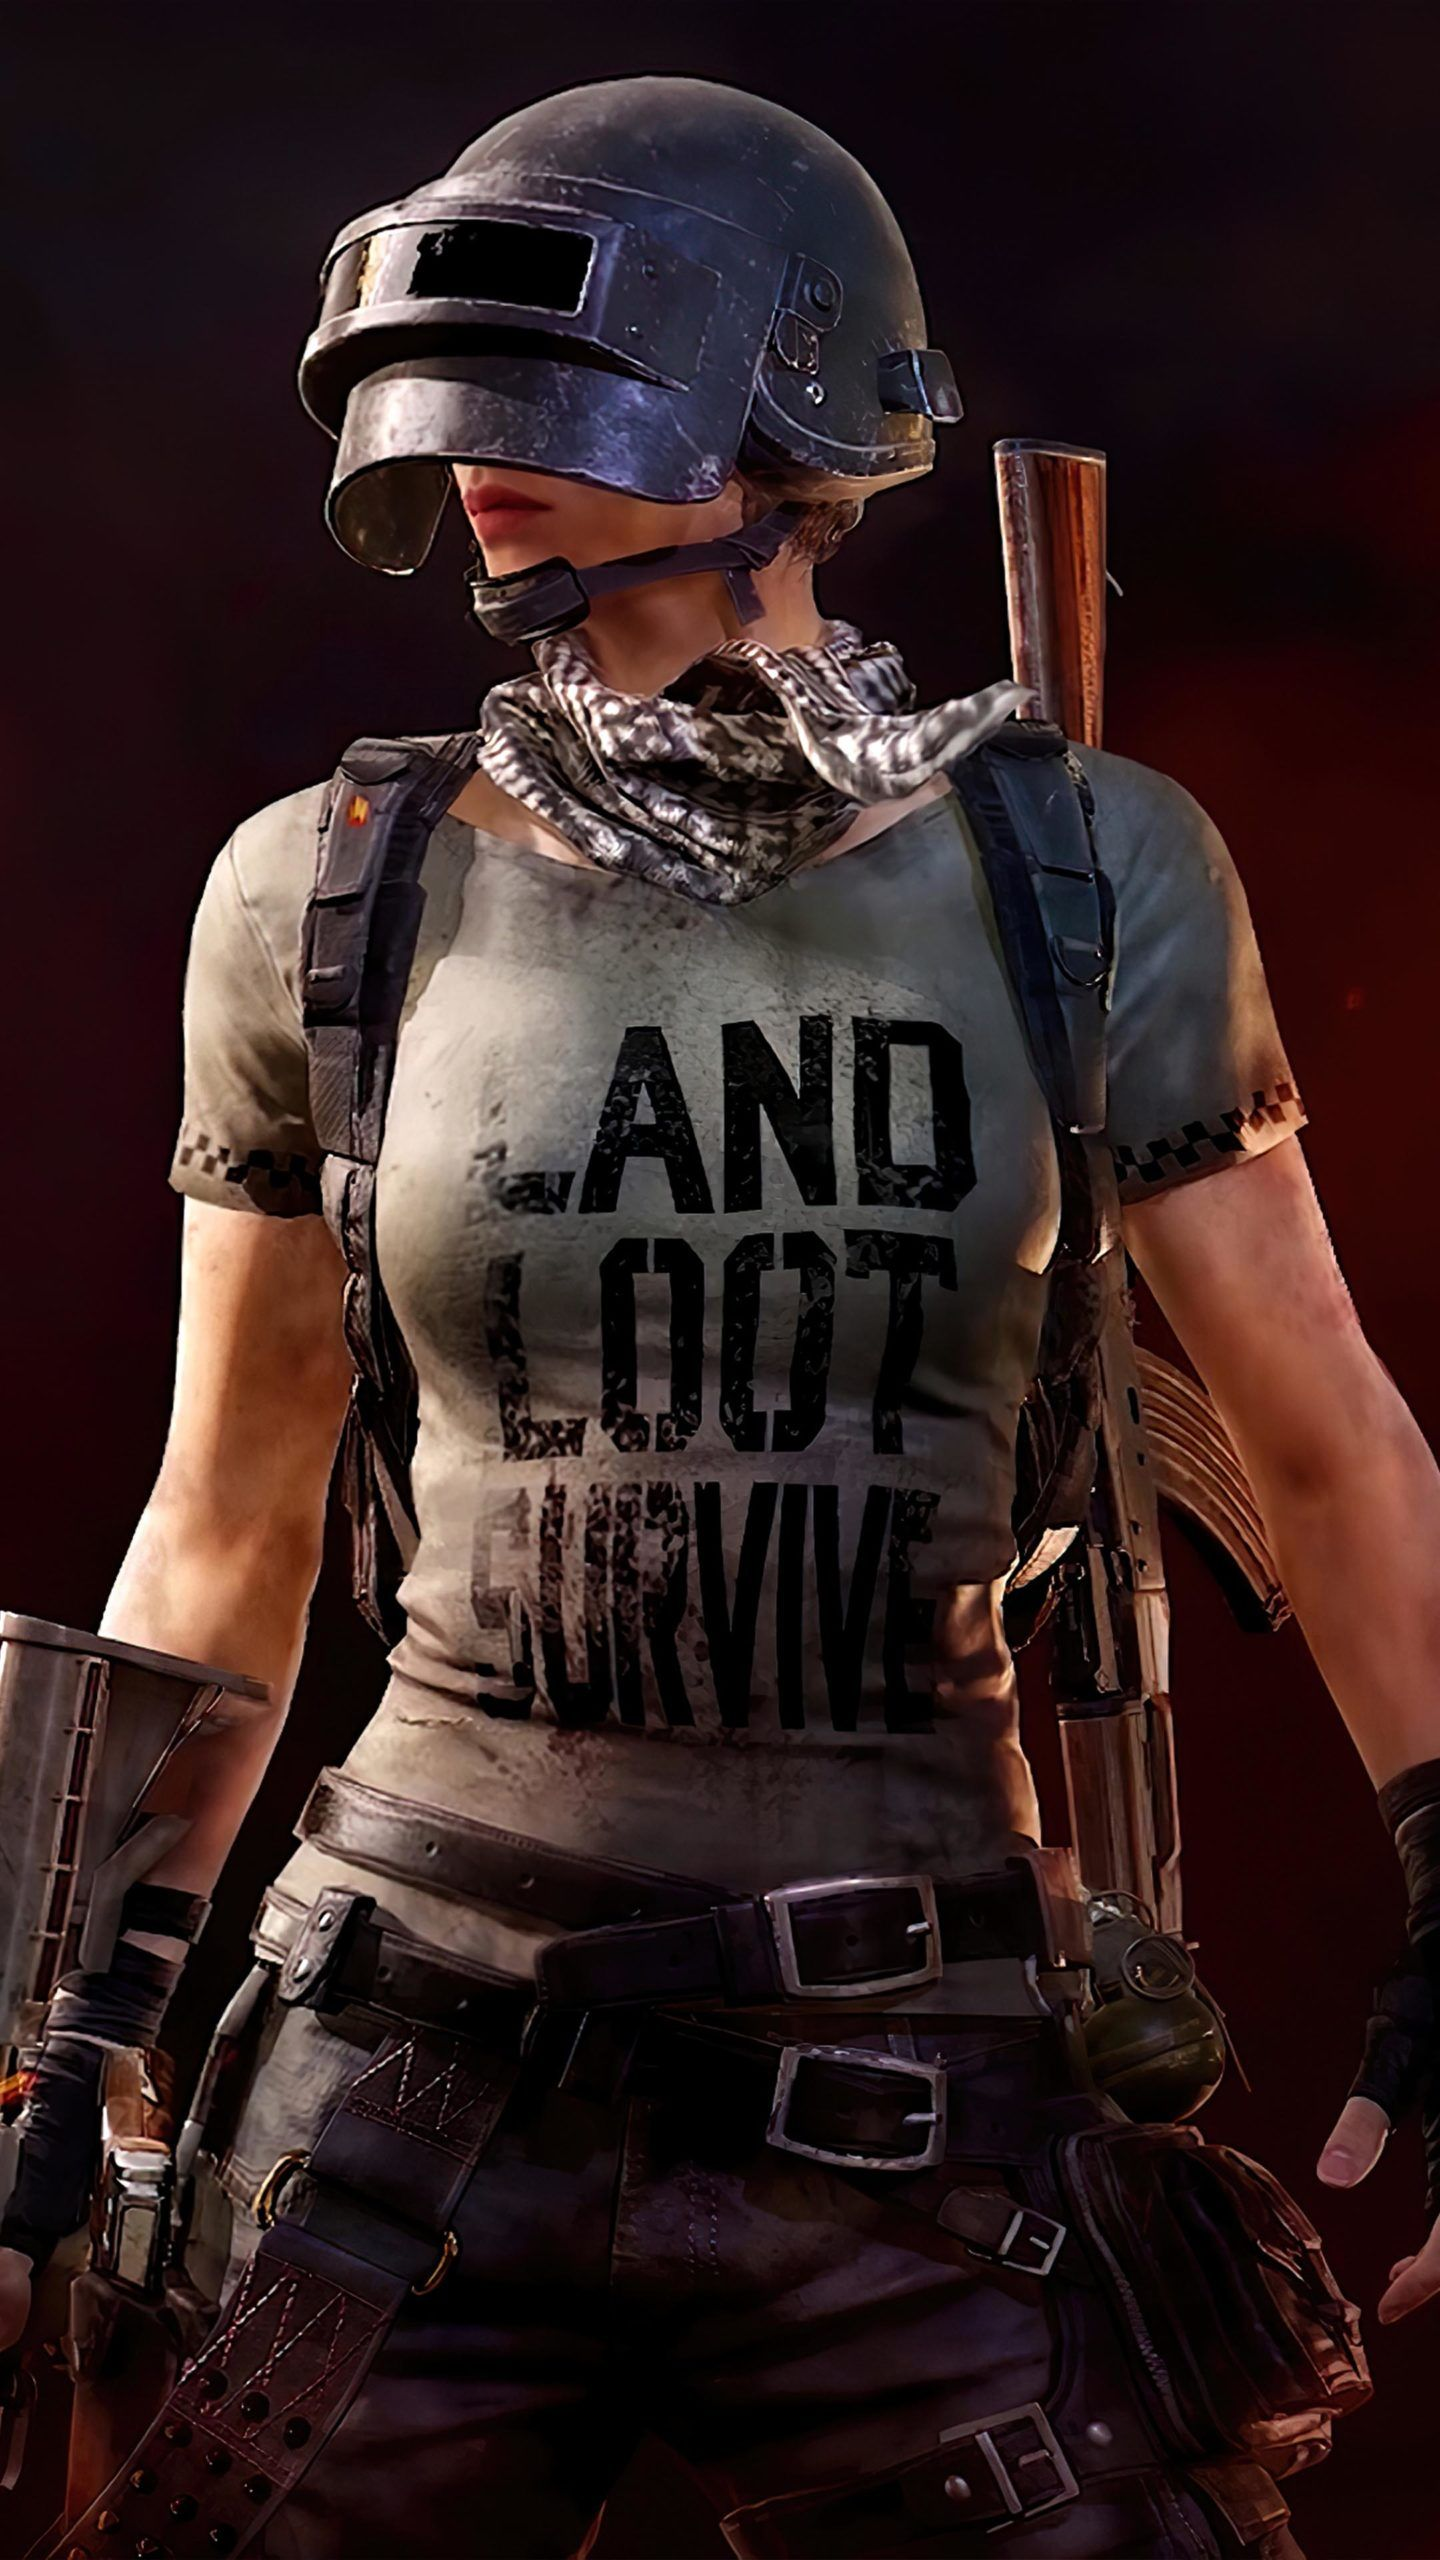 PUBG Girl Land Loot Survive in 2020 Loot, Survival, Game